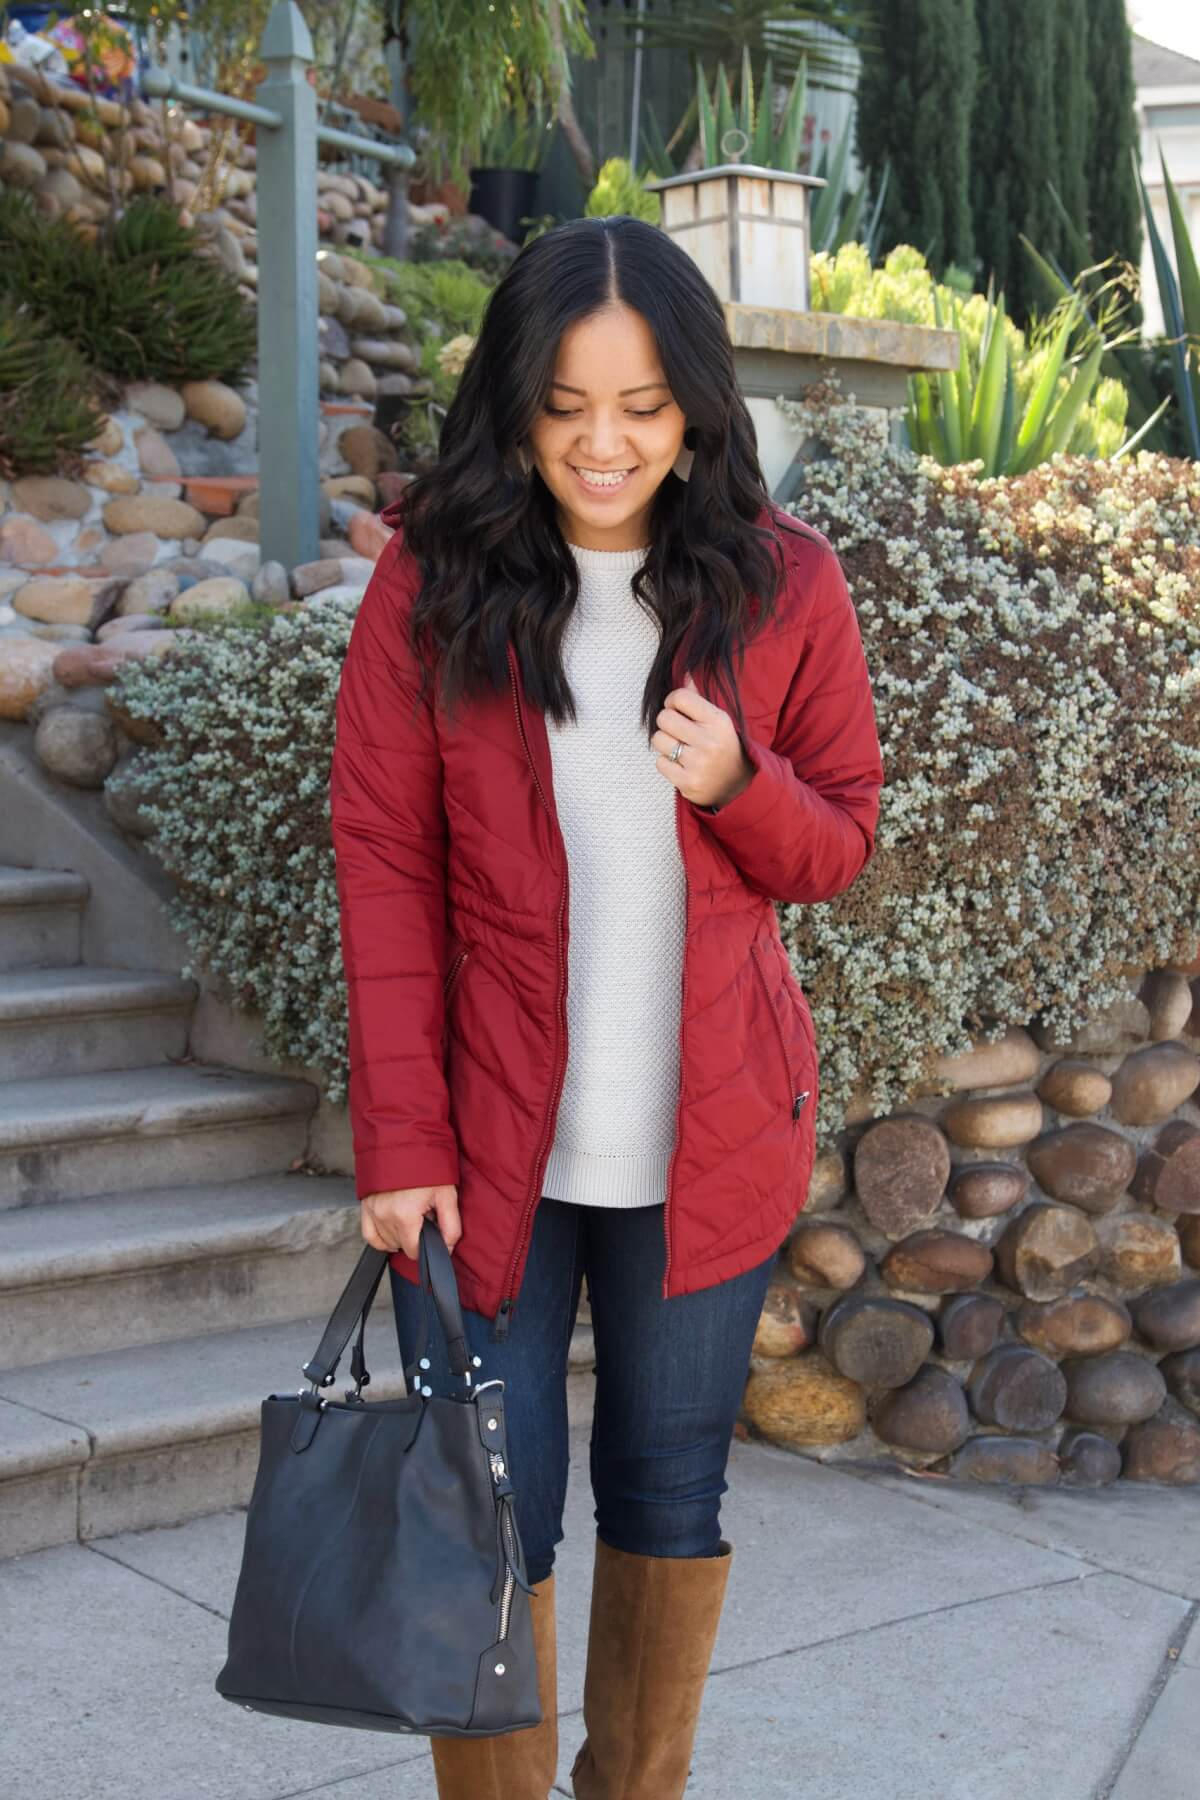 Casual Winter Outfit: white sweater + red puffer jacket + tan suede boots + skinny jeans + dark grey bag + cream leather earrings